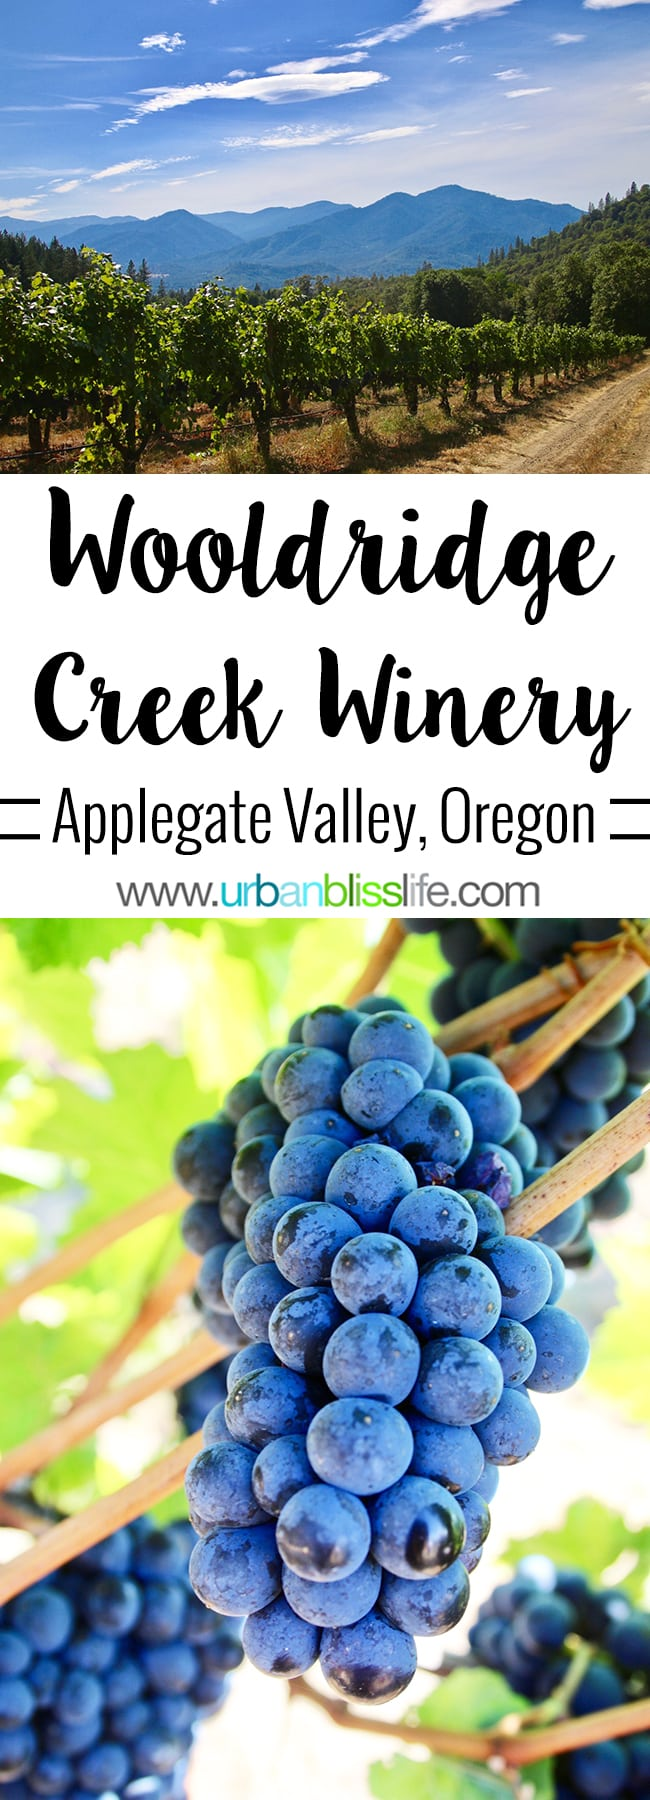 Wooldridge Creek Winery Grants Pass, Oregon Applegate Valley wine tasting and tour, on UrbanBlissLIfe.com